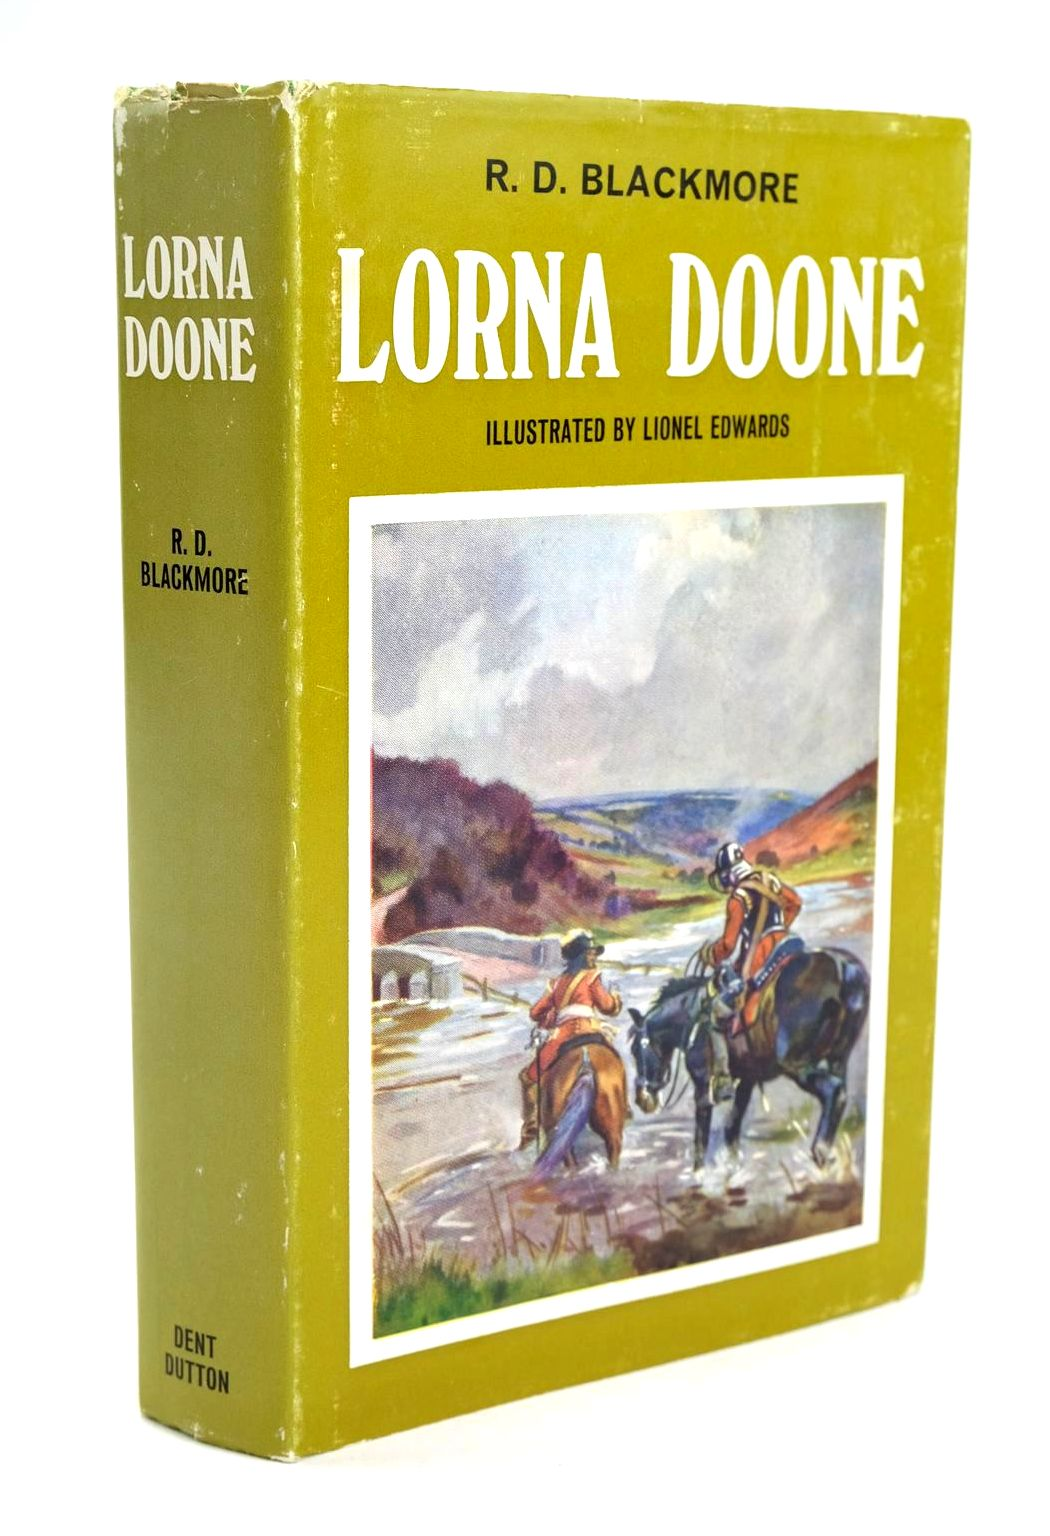 Photo of LORNA DOONE written by Blackmore, R.D. illustrated by Edwards, Lionel published by J.M. Dent & Sons Ltd. (STOCK CODE: 1319249)  for sale by Stella & Rose's Books